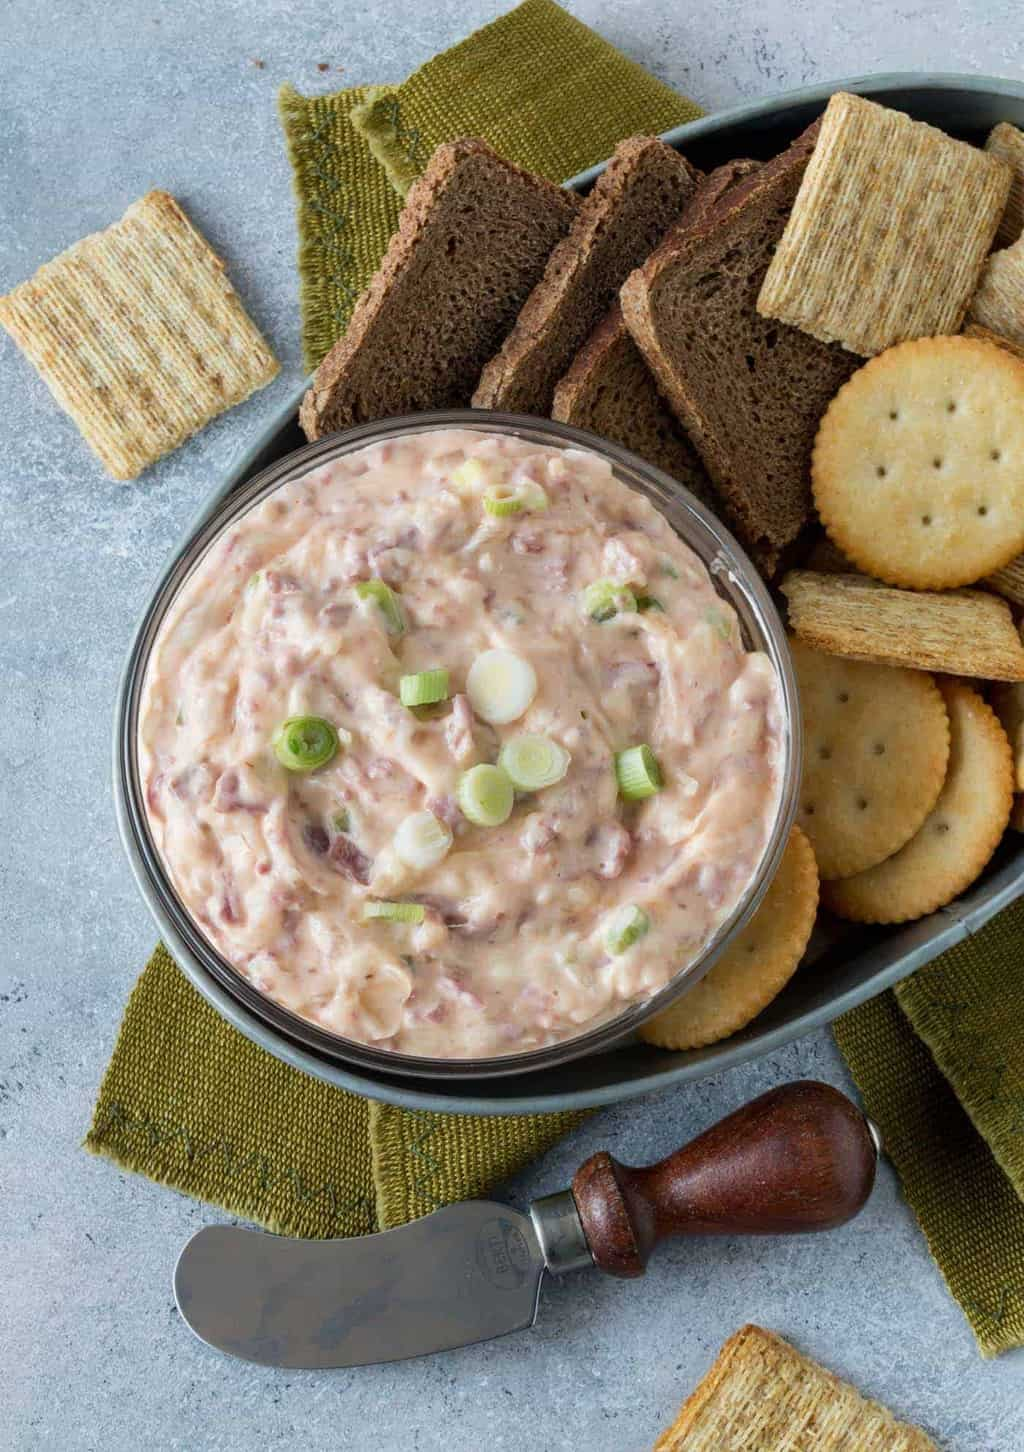 Creamy Reuben Dip is a small glass bowl with crackers and cocktail bread for serving.